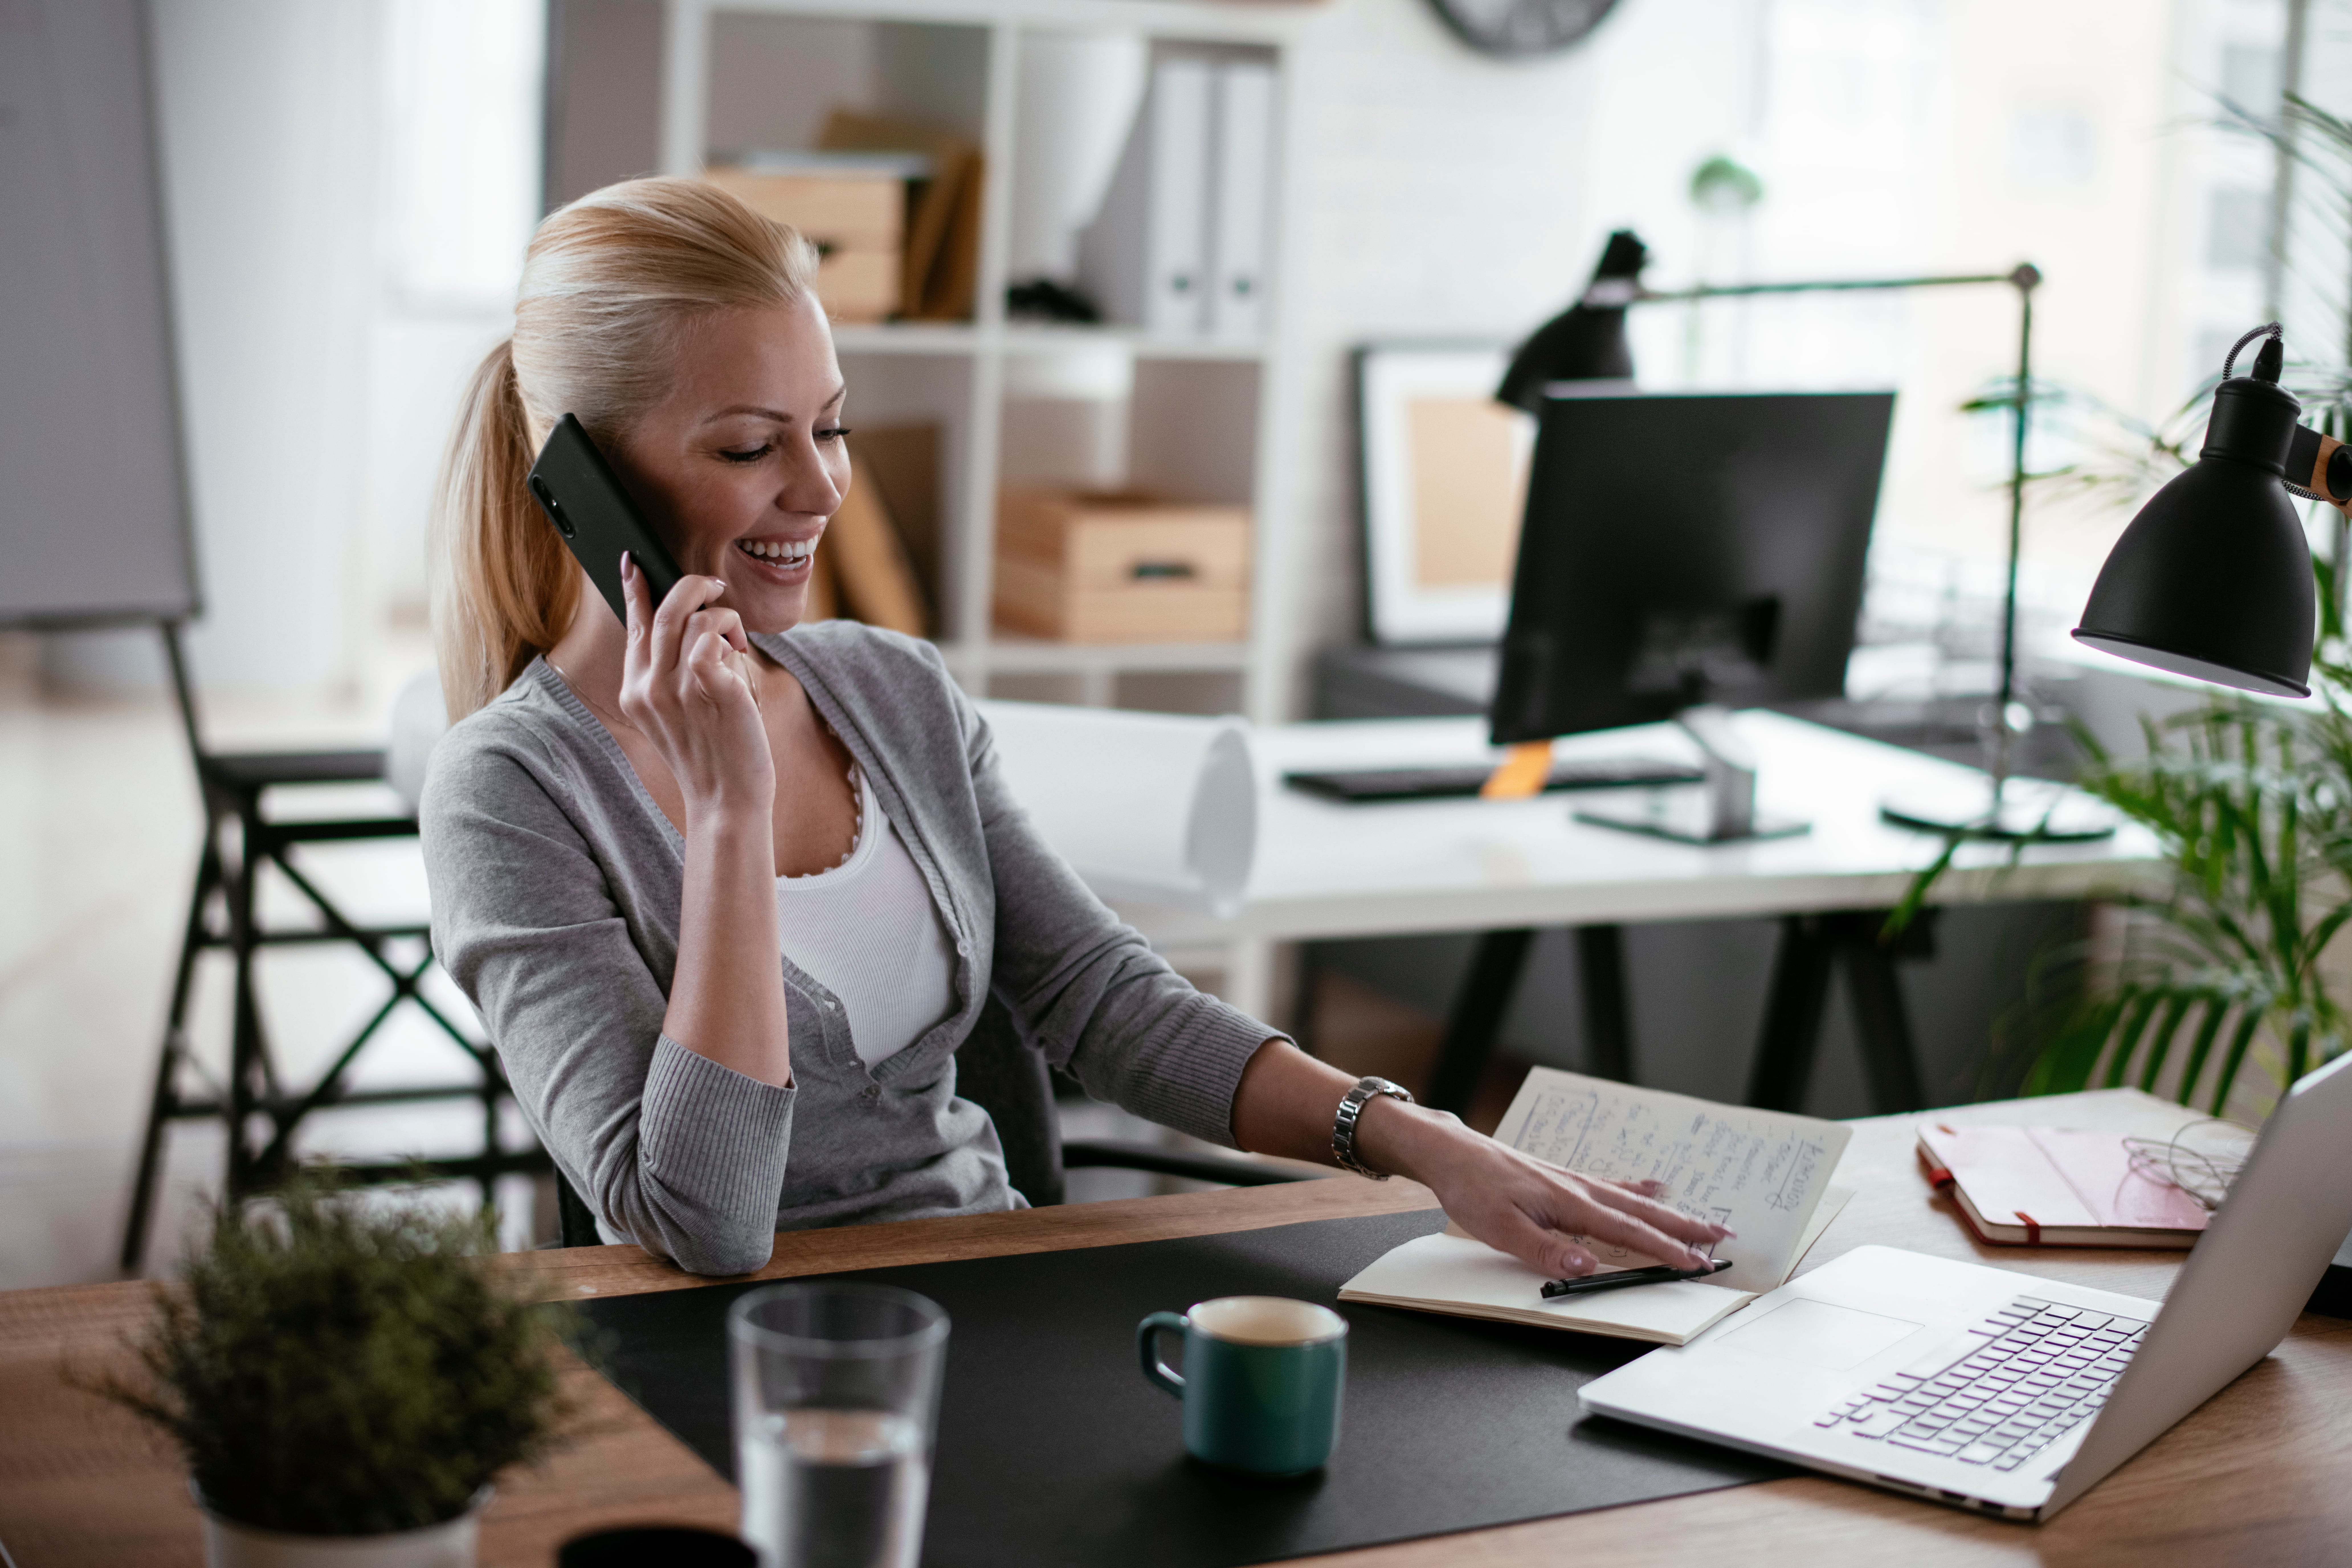 Staying connected while working apart